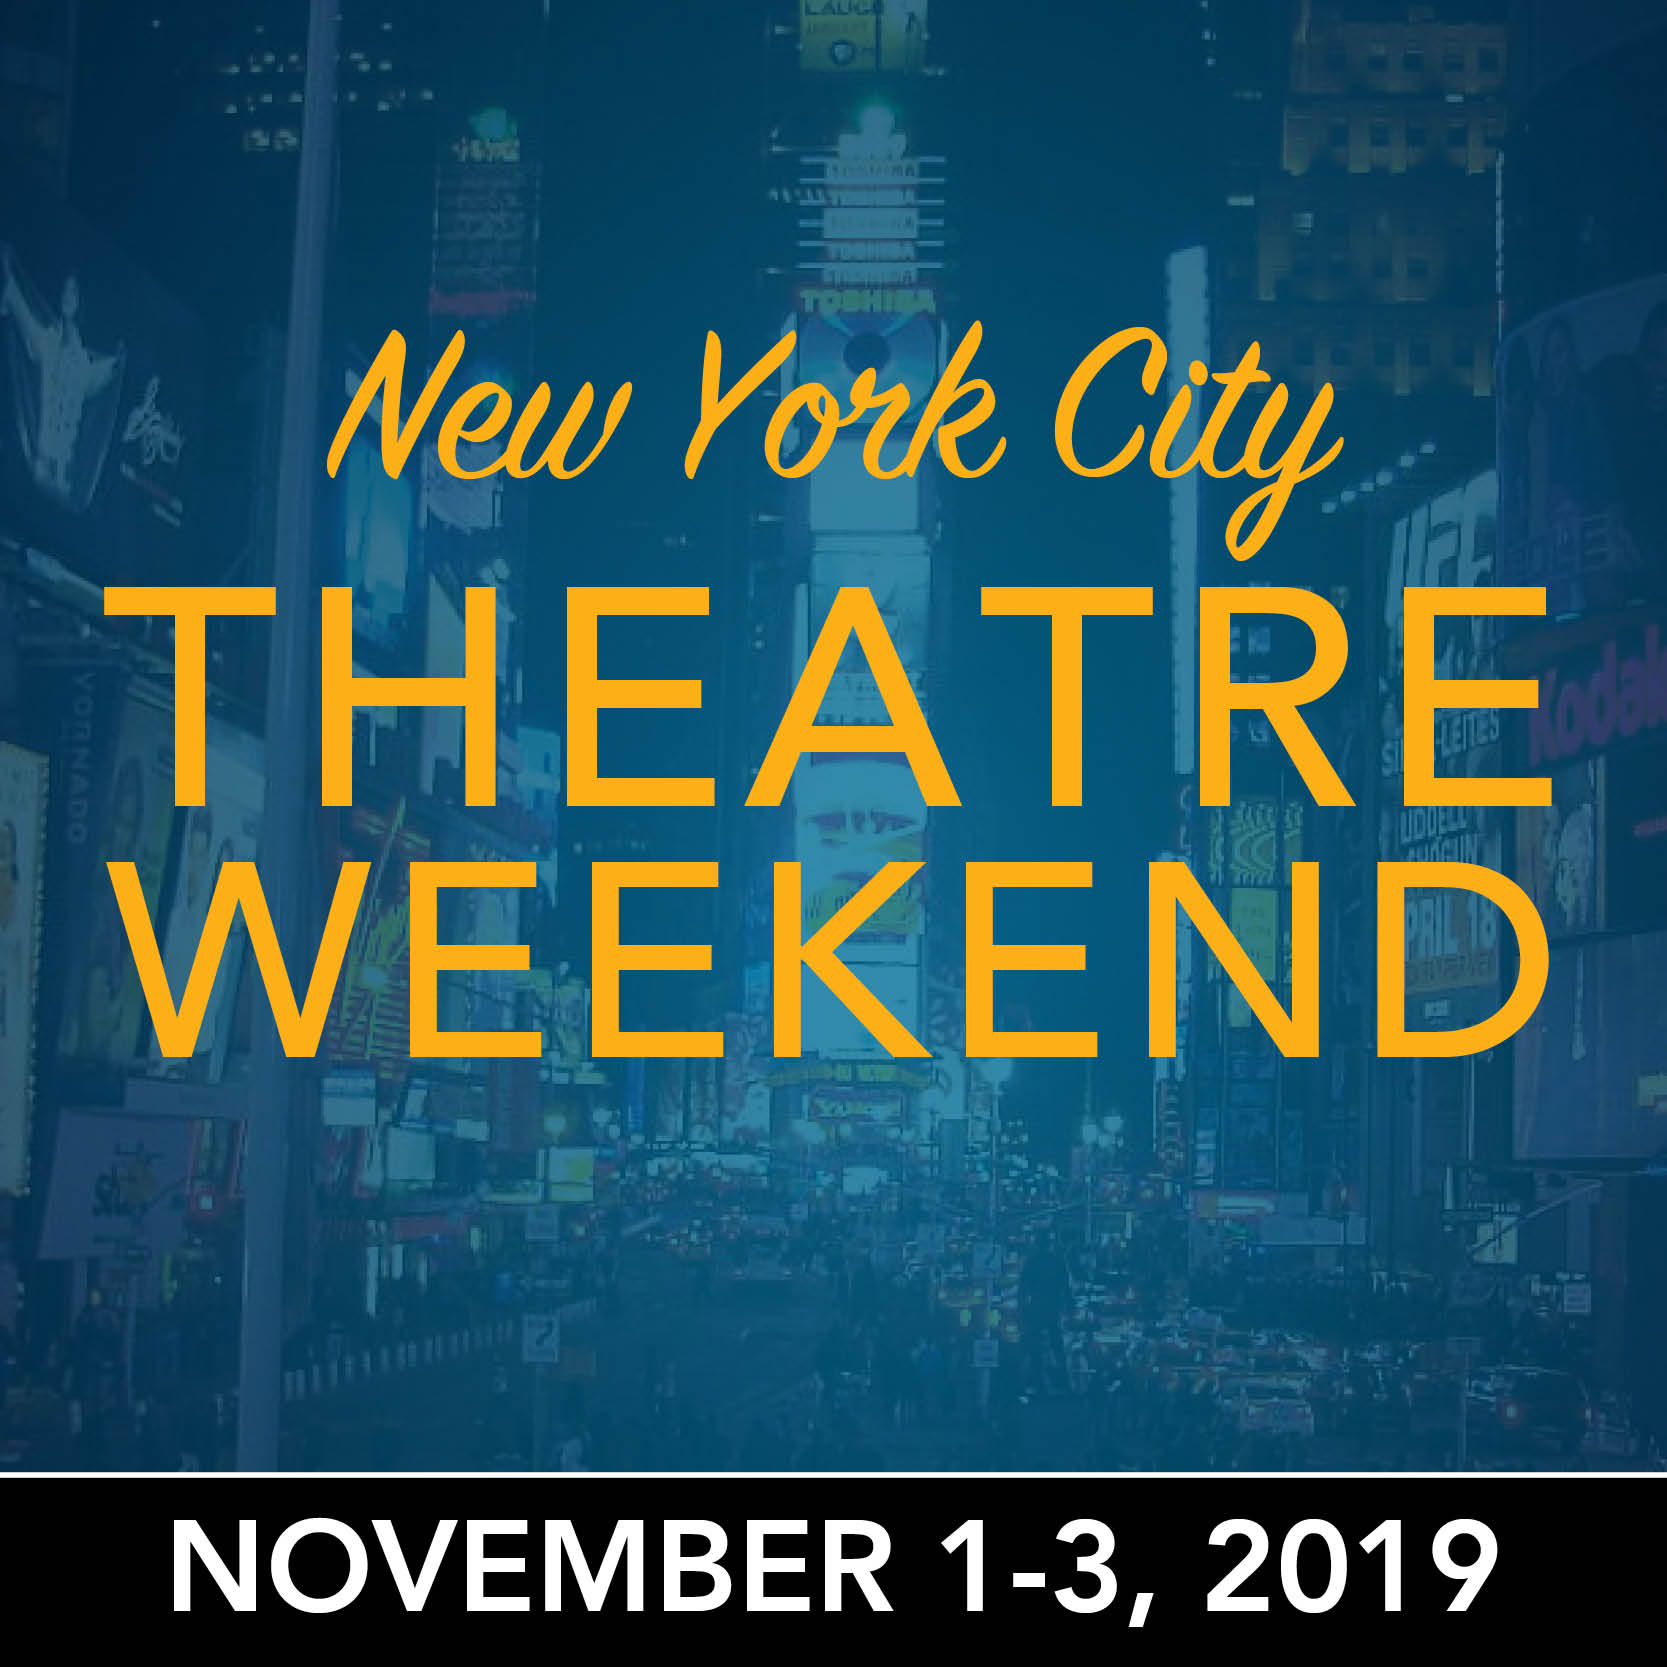 NY Theatre Weekend 2019 - square.jpg